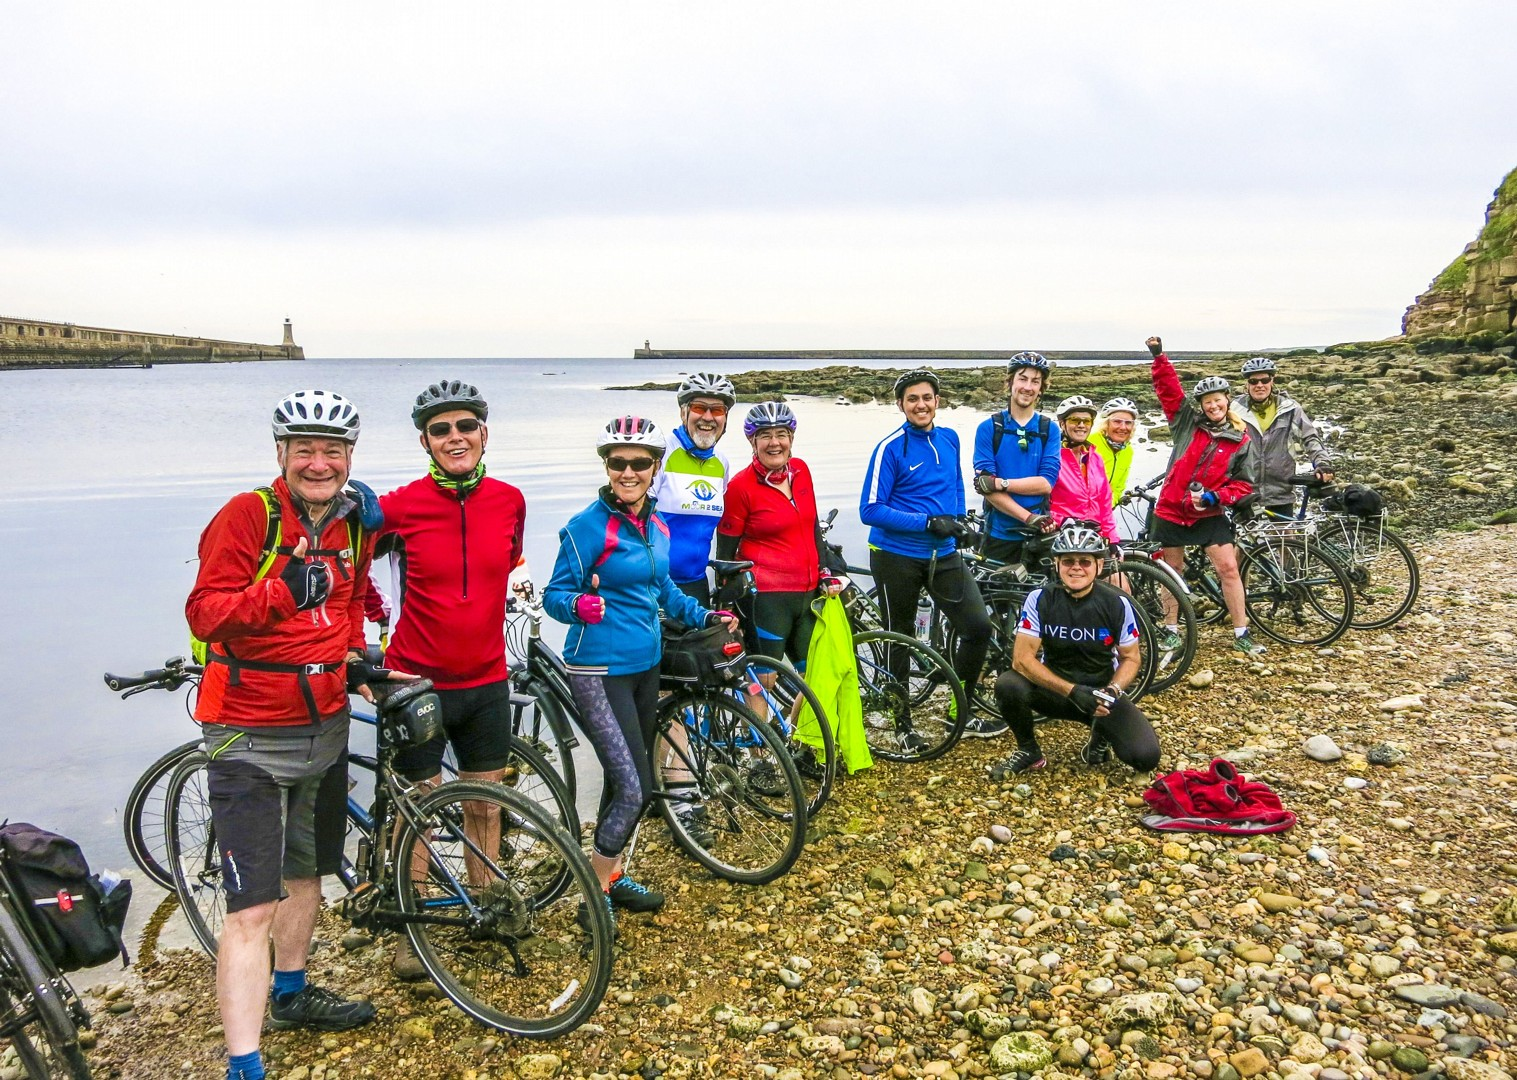 self-guided-big-or-small-group-whitehaven-to-newcastle-cycling.jpg - UK - C2C - Coast to Coast 4 Days Cycling - Self-Guided Leisure Cycling Holiday - Leisure Cycling